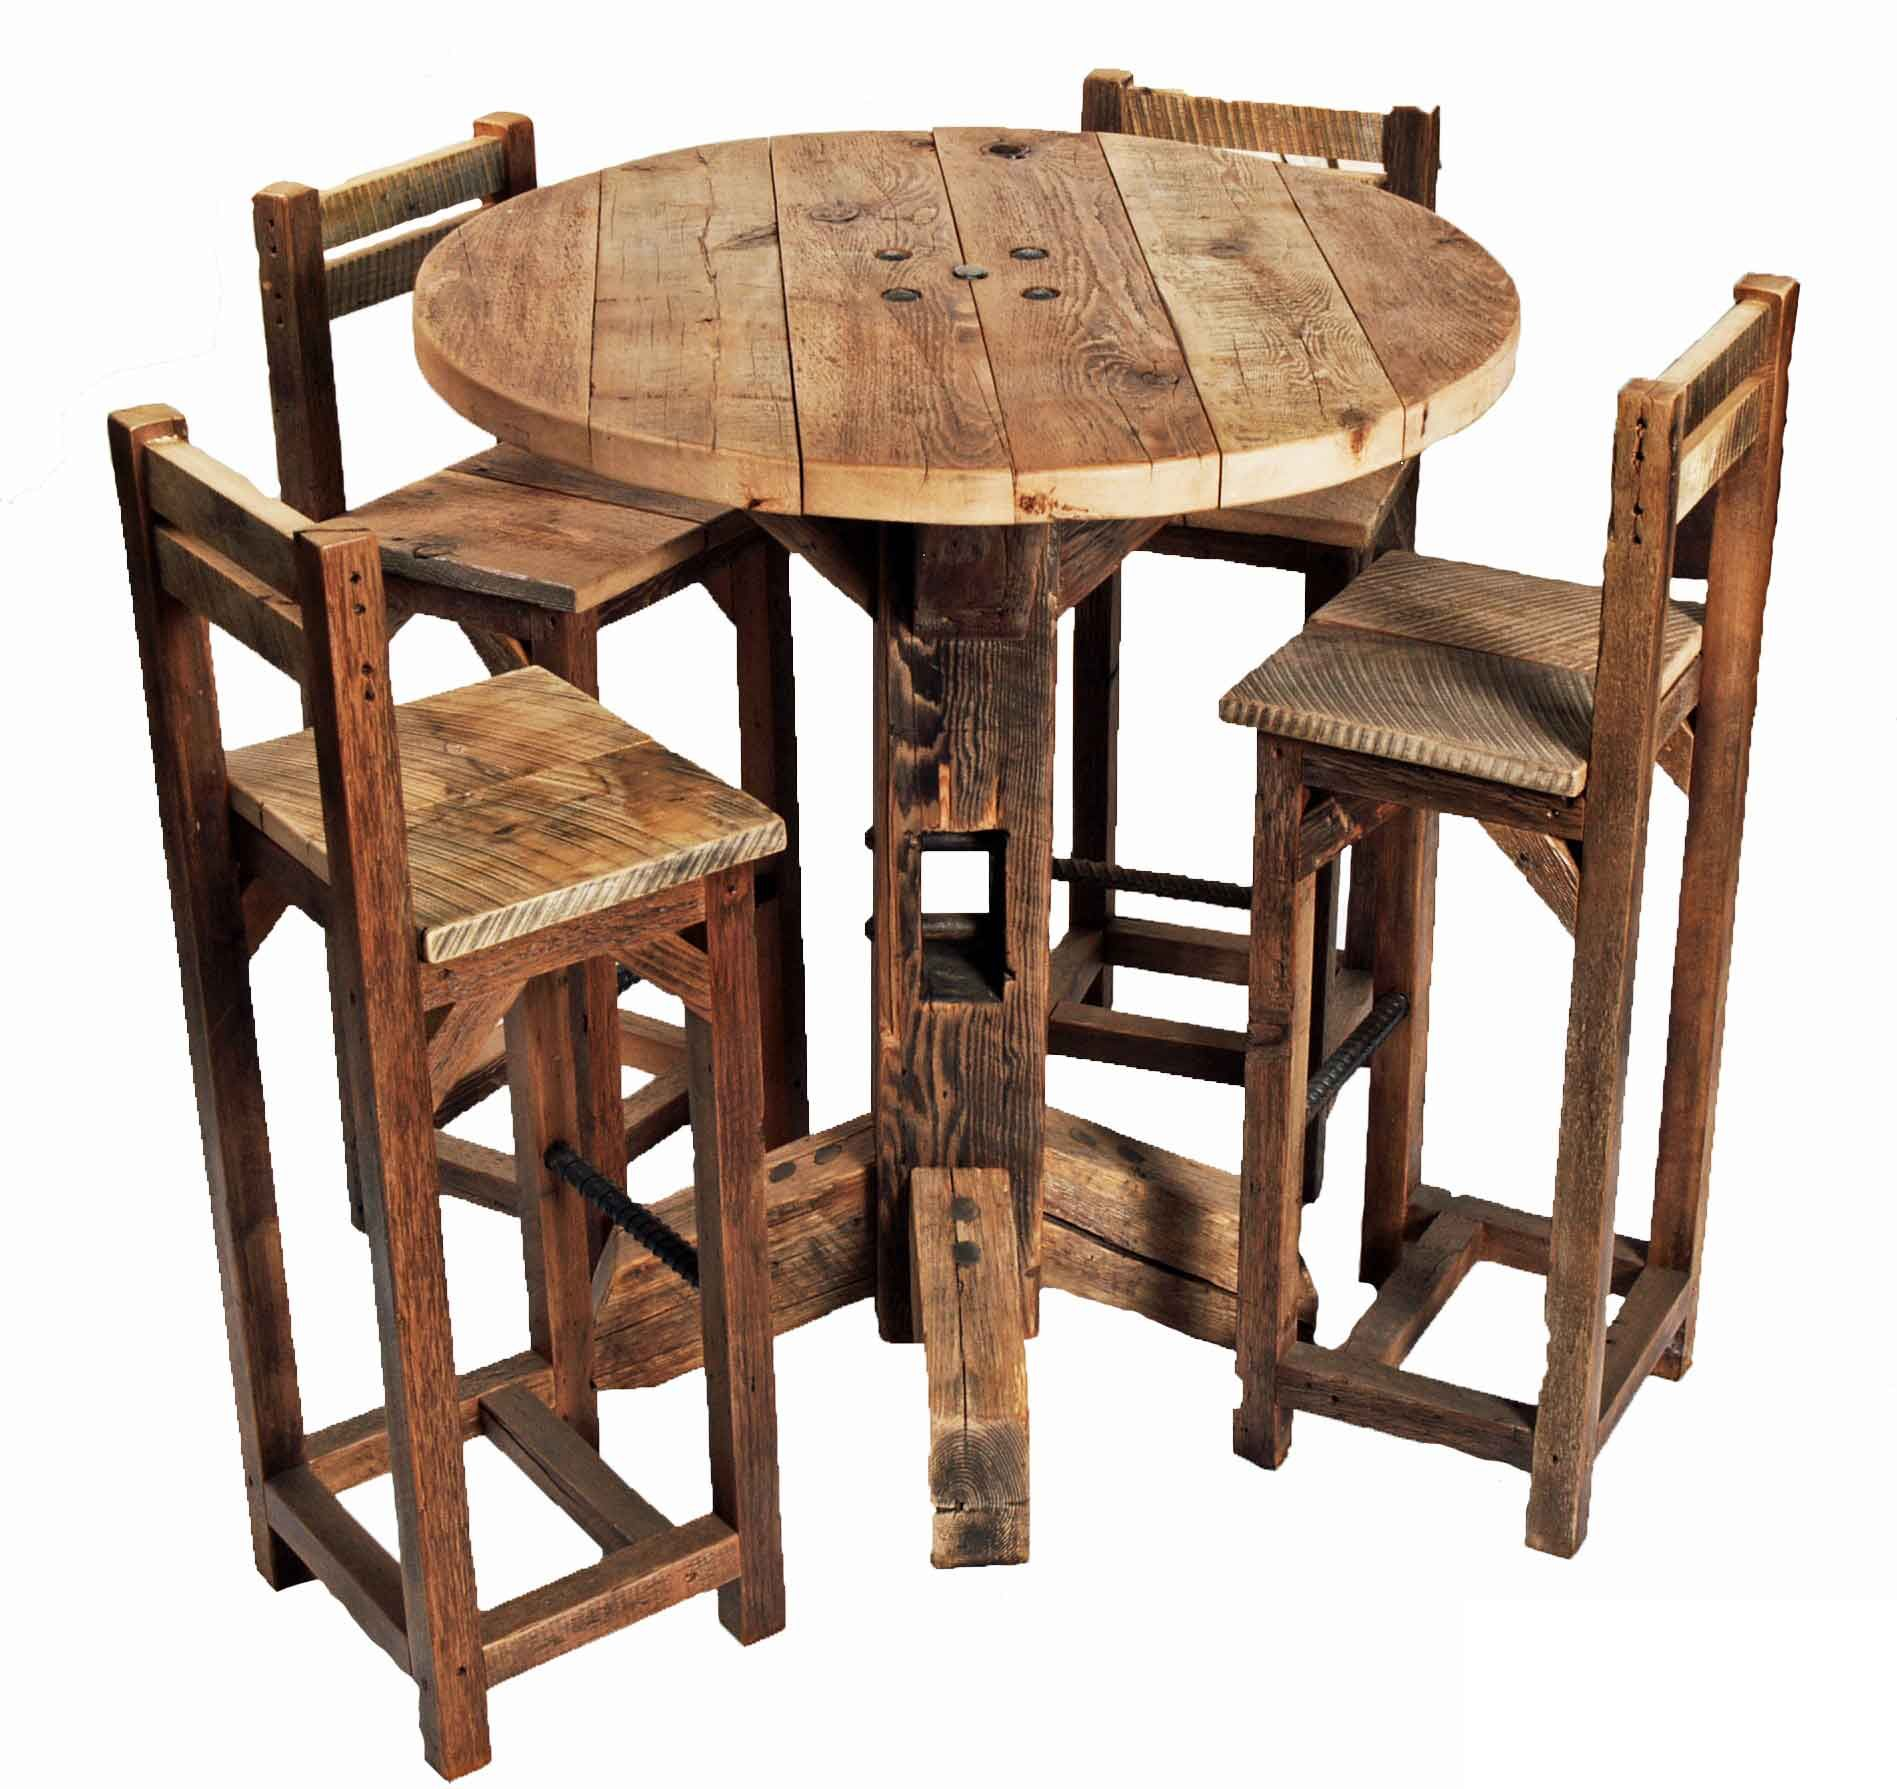 Old Rustic Small High Round Top Kitchen Table And Chair With High Legs And Back Ideas High Top Kitchen Table Sets Furniture  sc 1 st  Pinterest & Furniture Old Rustic Small High Round Top Kitchen Table And Chair ...